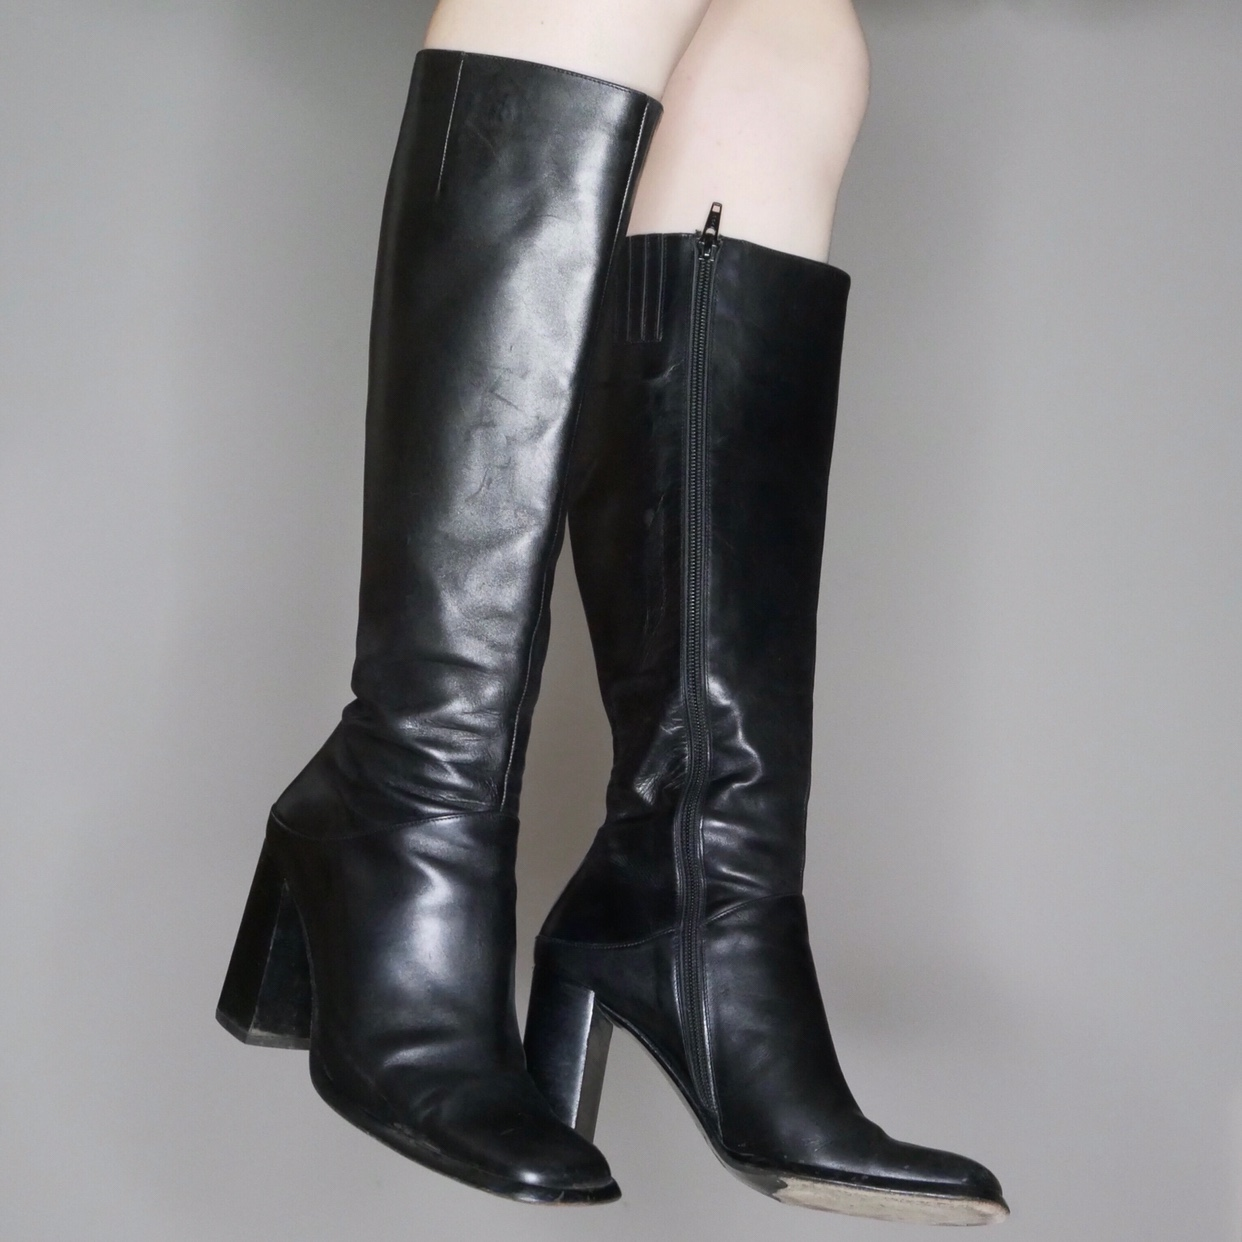 90s black leather below the knee boots